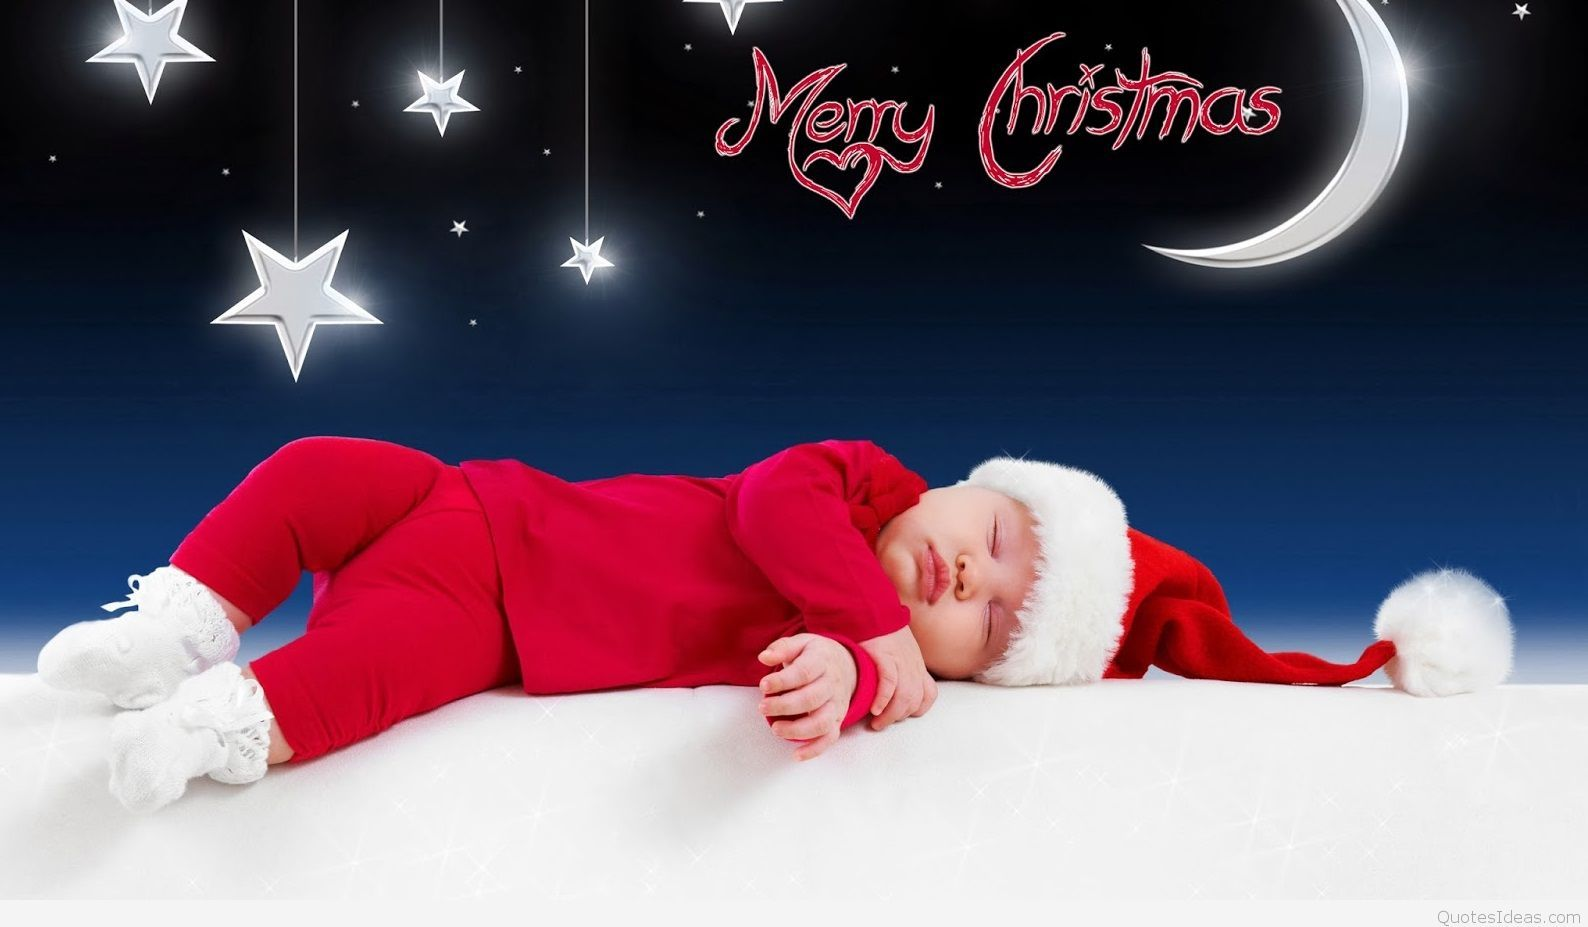 merry christmas hd pics 10 merry christmas mobile phones merry little christmas happy